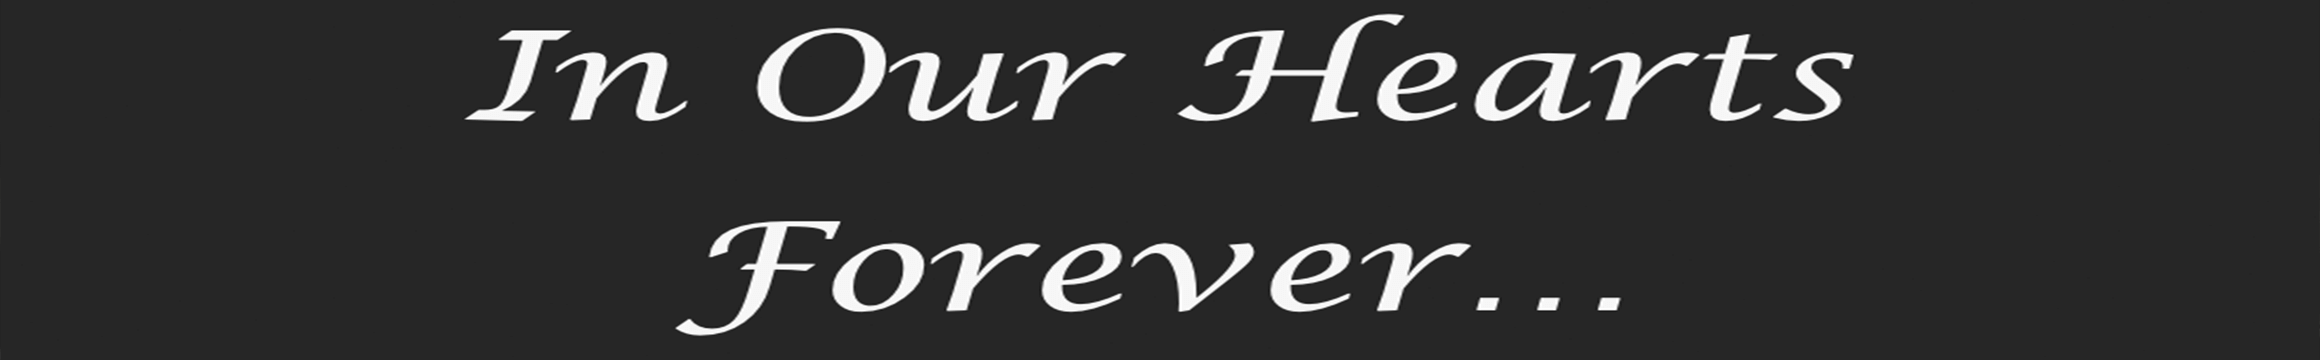 In Our Hearts Custom Banner